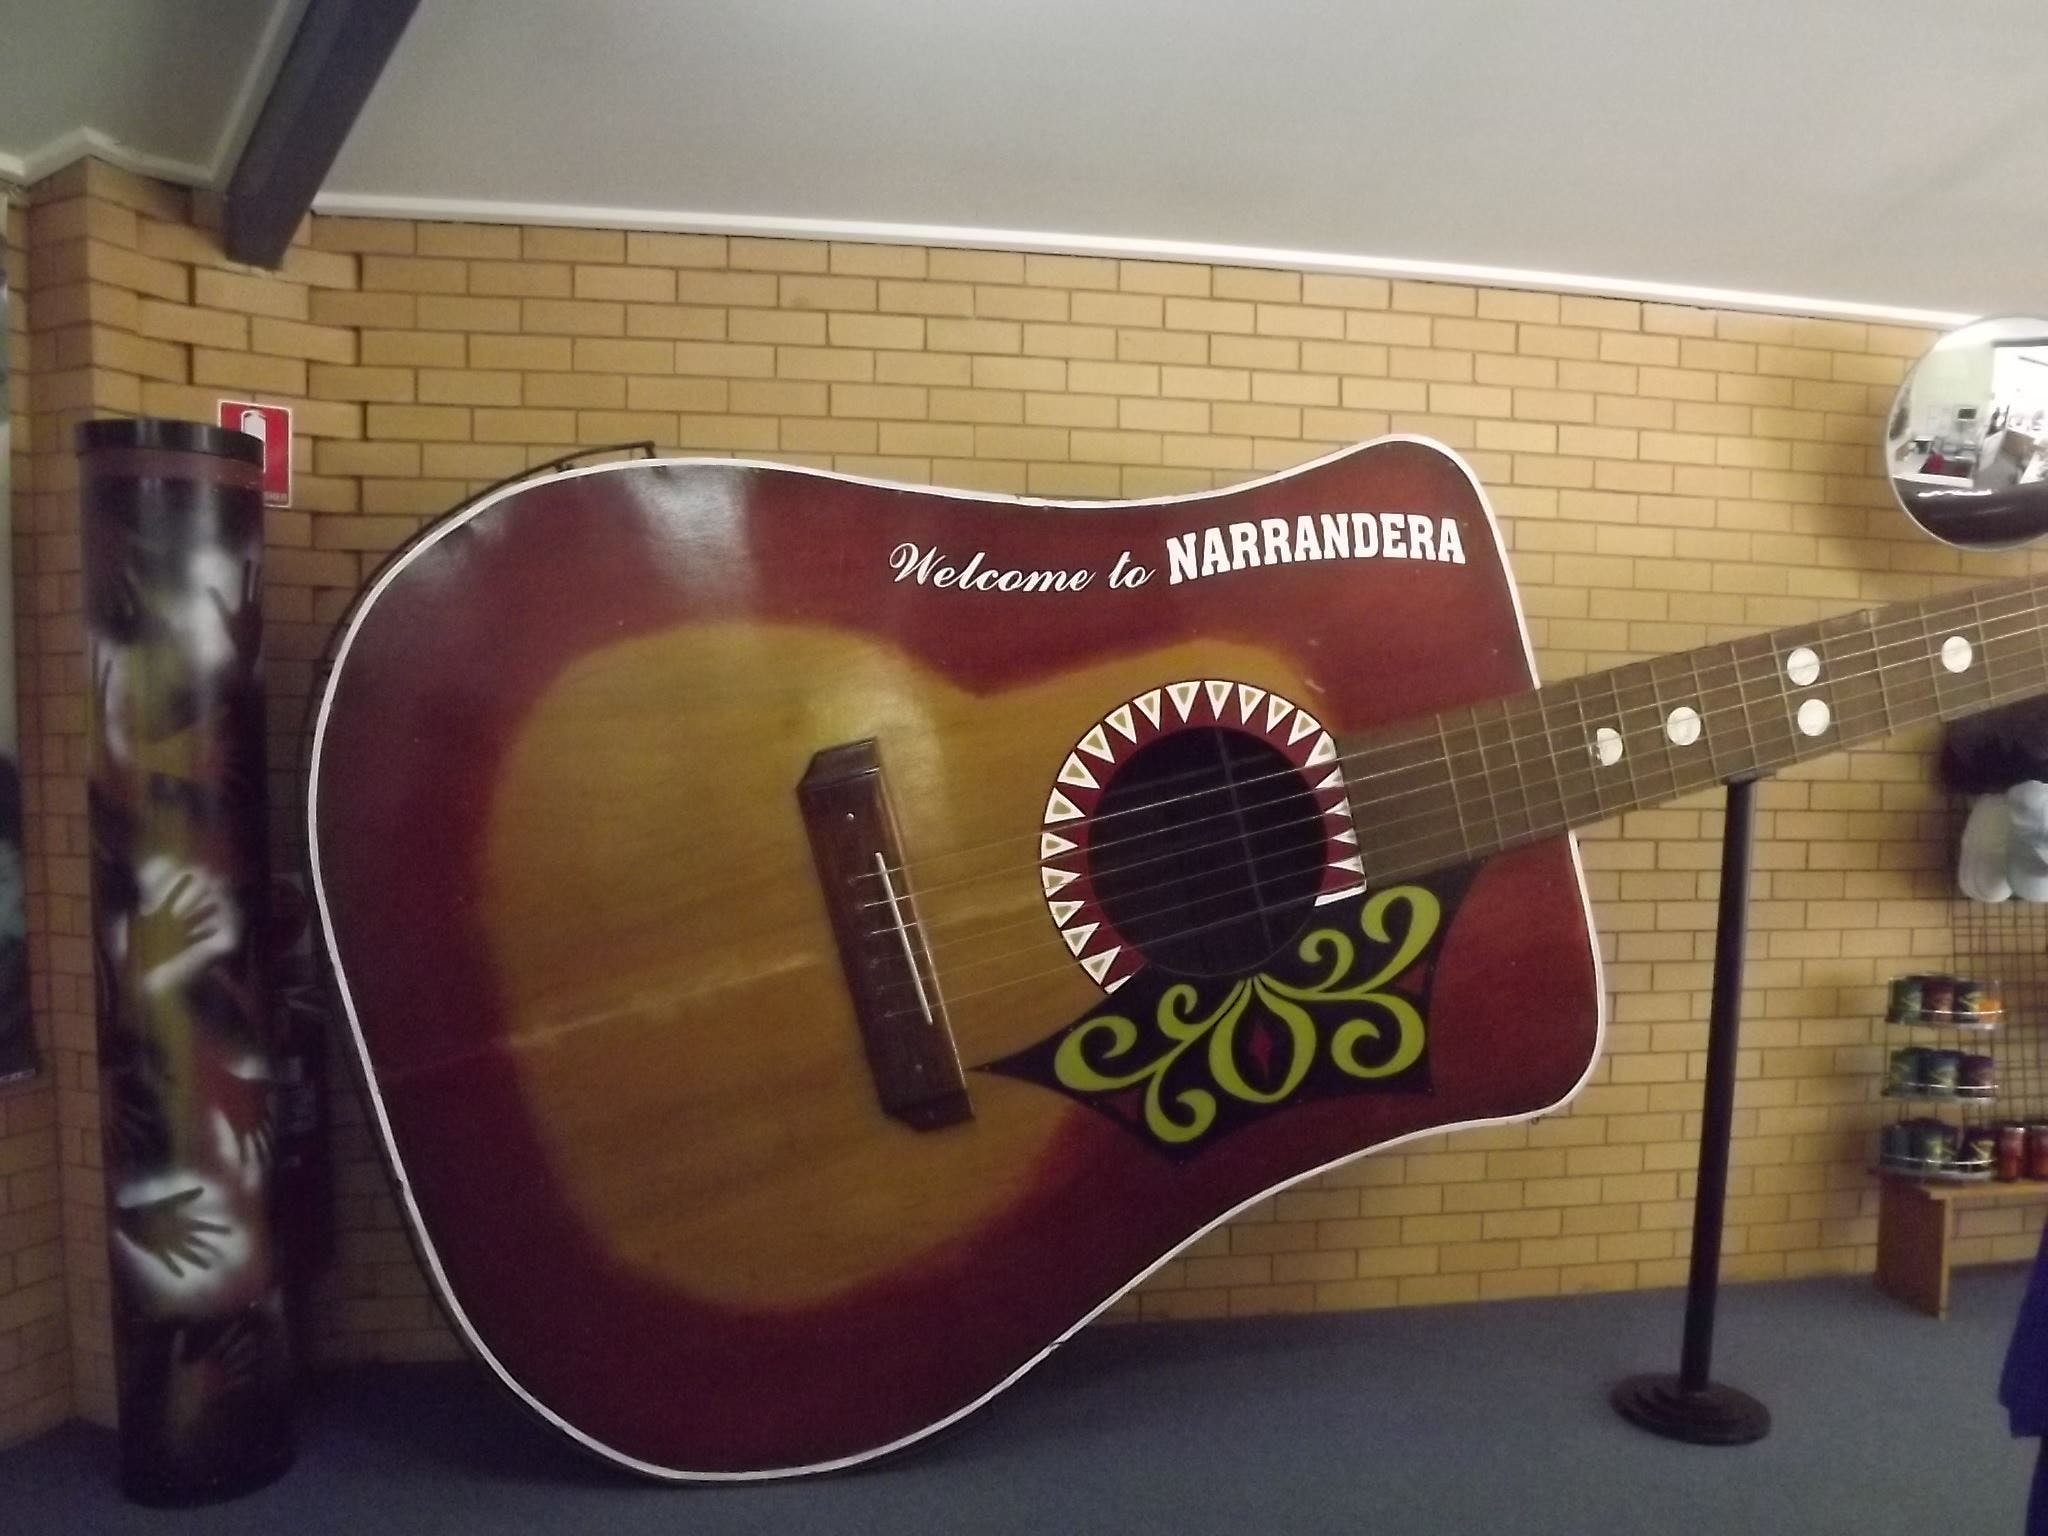 Big Guitar inside the Narrandera Visitor Infromation Centre